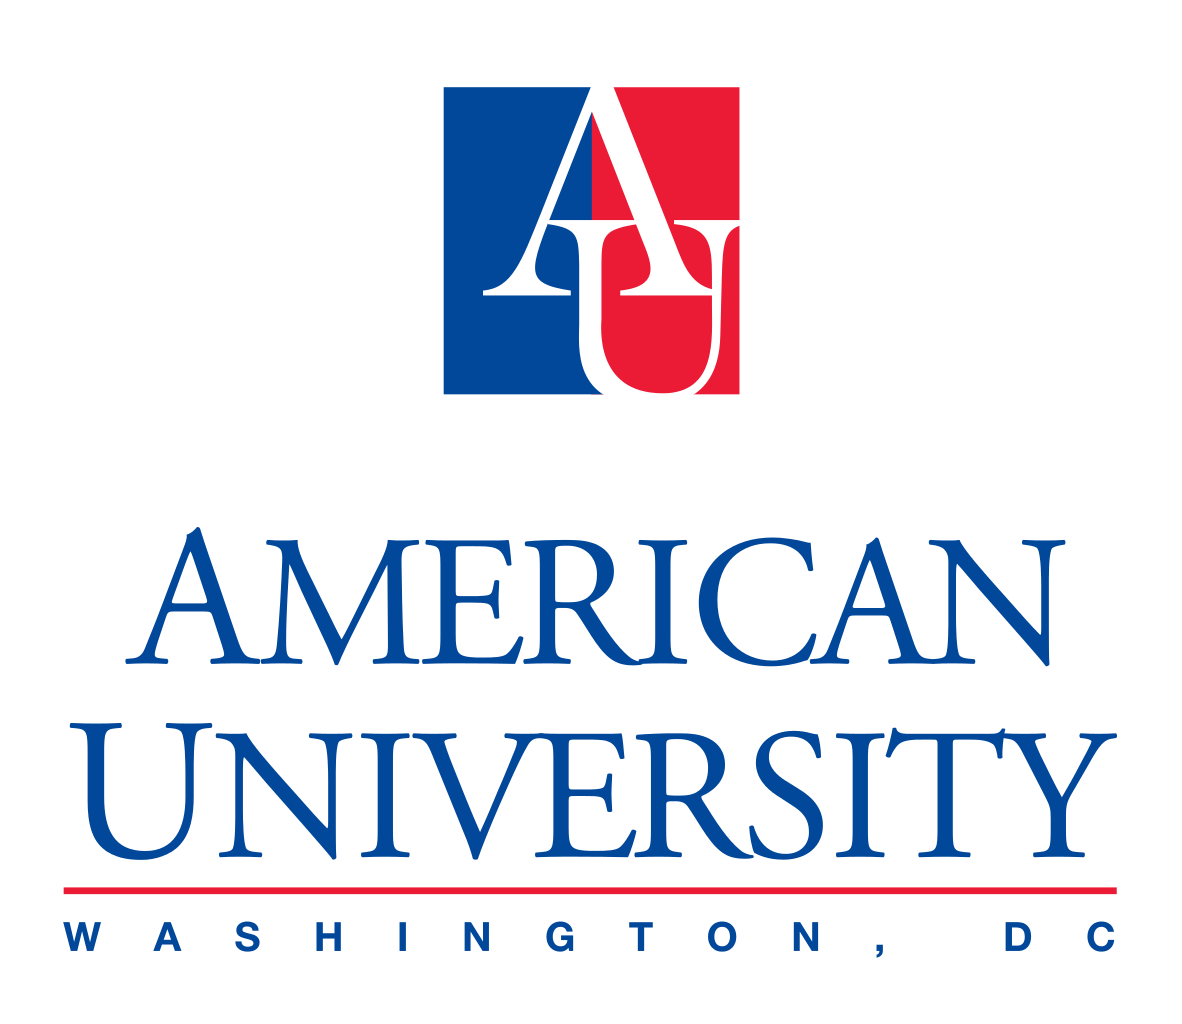 American University Master of Public Administration and Policy